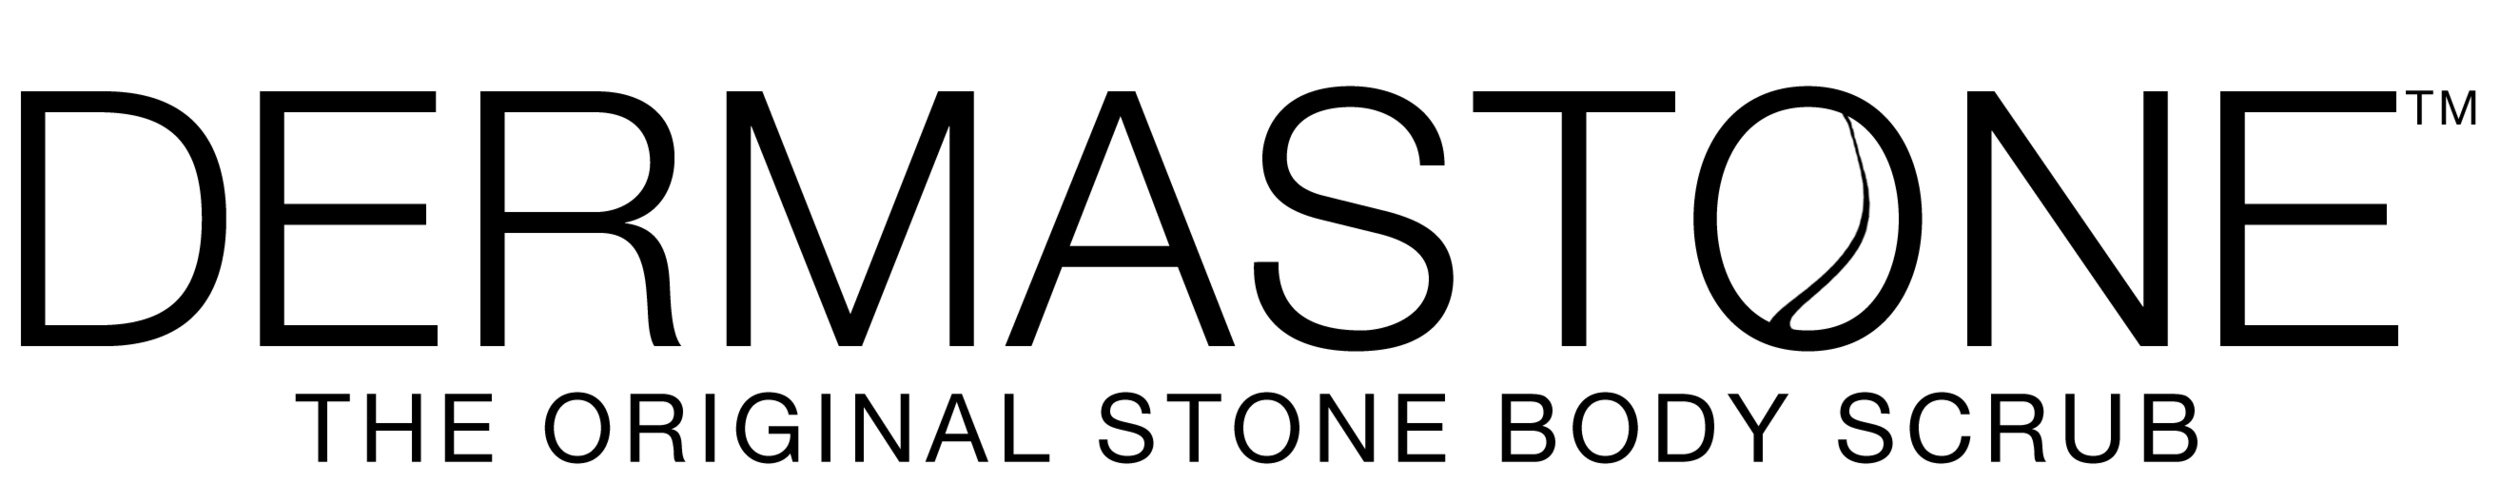 Dermastone™  The Original Stone Body Scrub Designed To Exfoliate Dry Ashy  Skin, Ingrown Hair, And Strawberry Legs To Reveal Softer, Smoother Legs And  Body